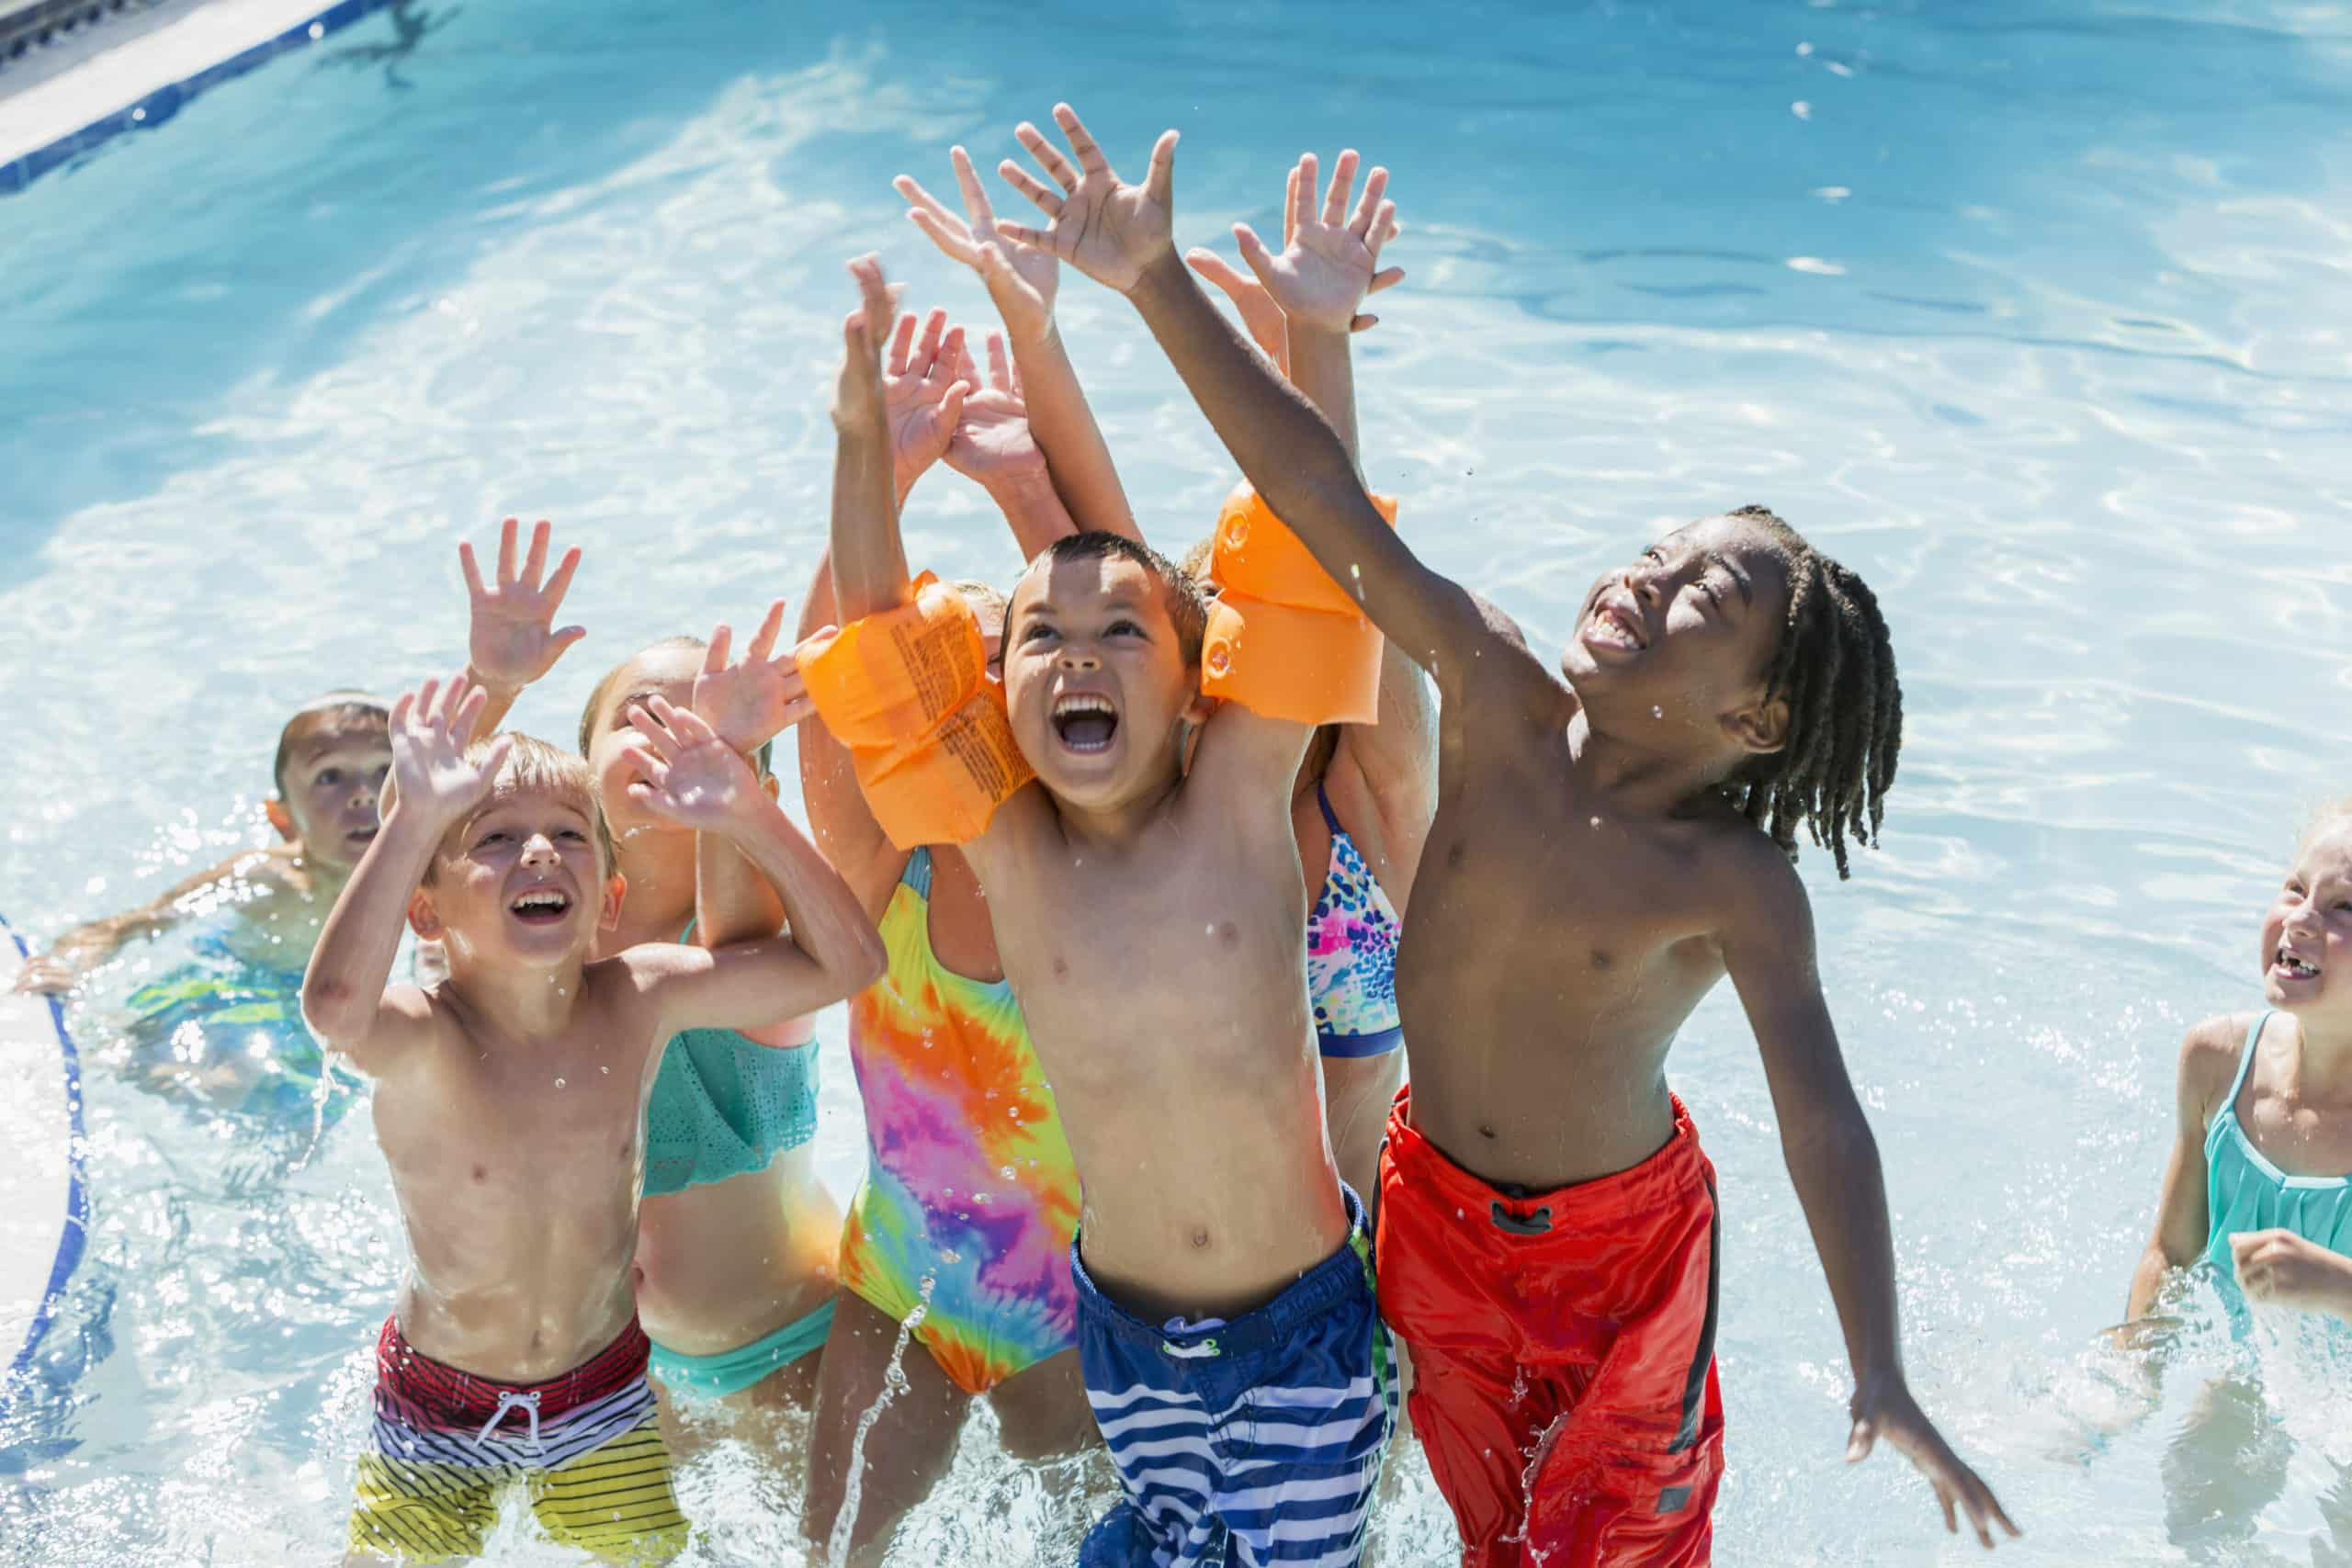 3. Kids Pool Party – Pool Party Games